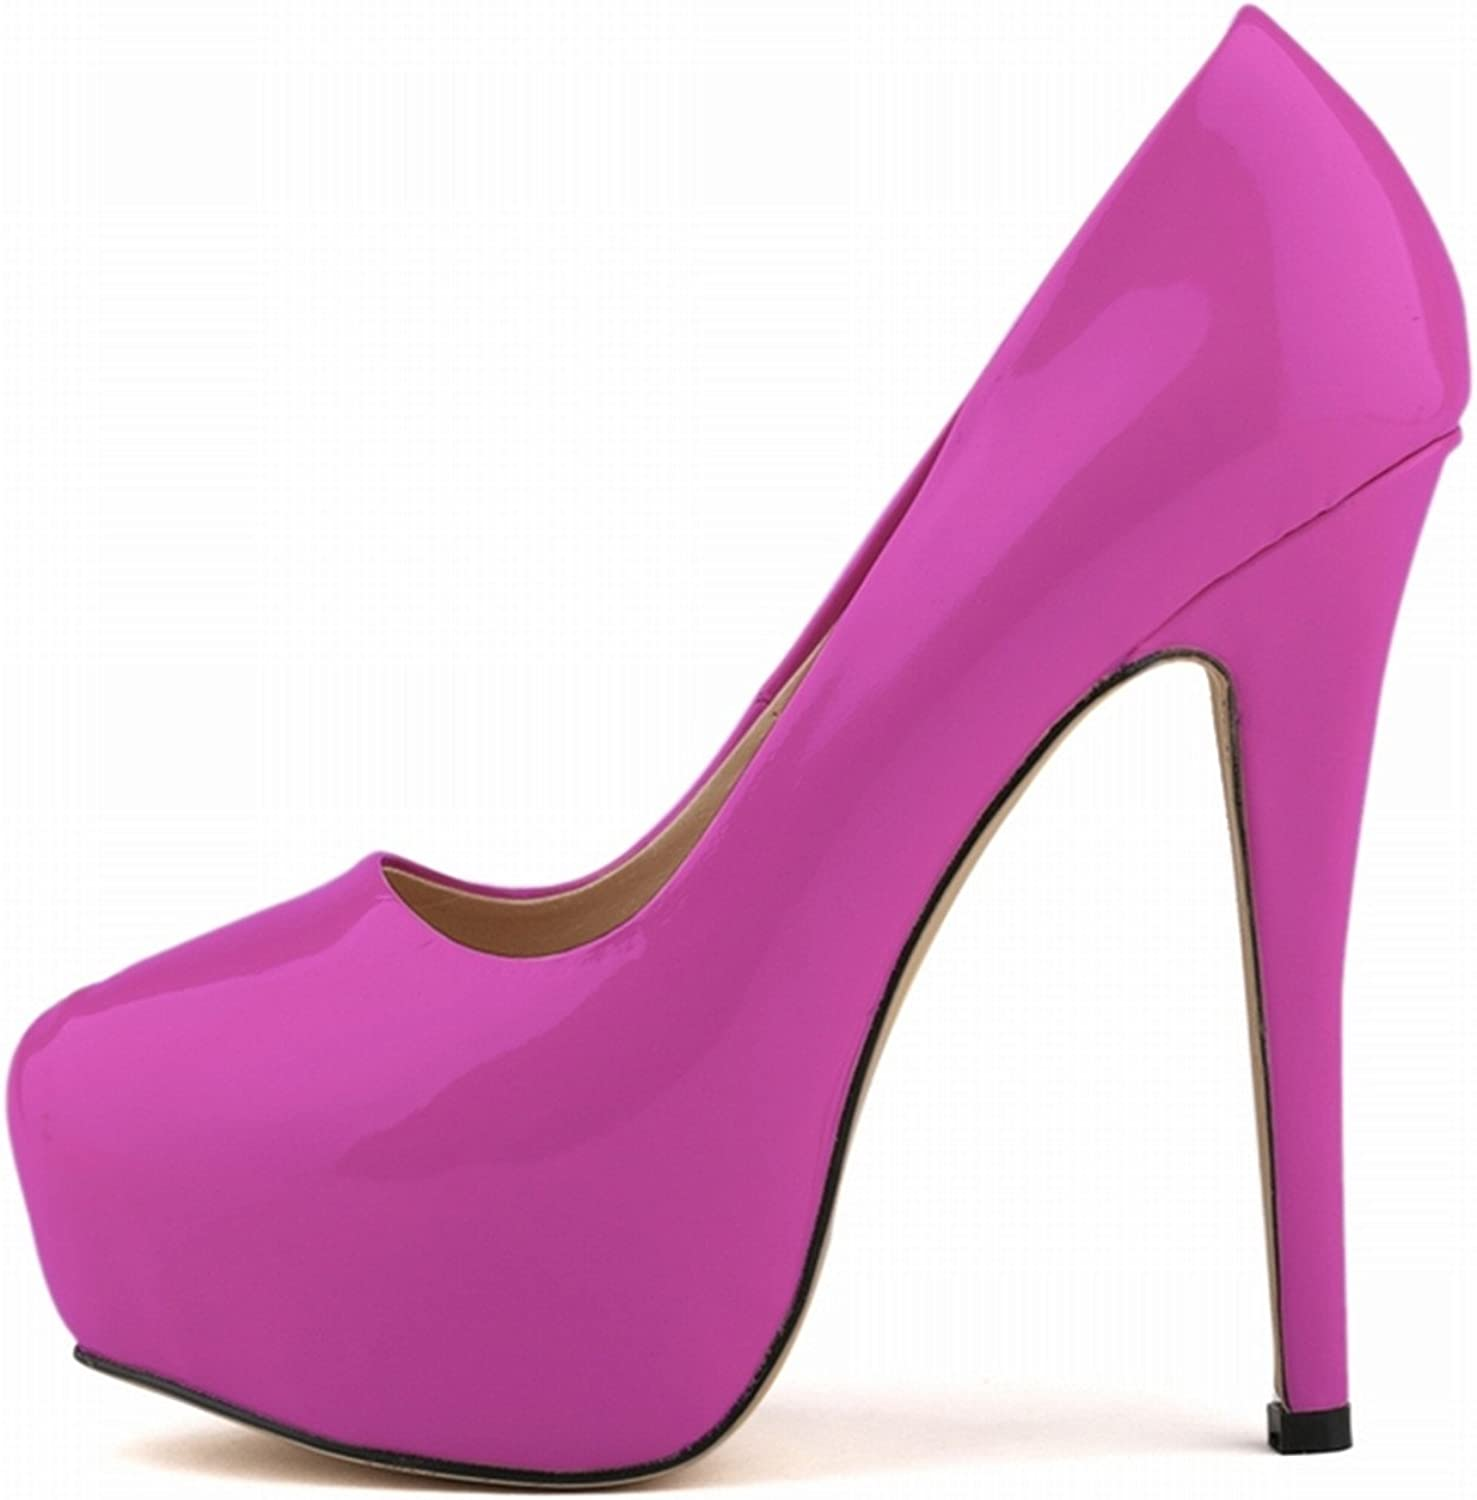 Pumps Women Sexy Extremely High Heels shoes Bridal Stiletto Red Ladies Wedding Party shoes 817-1PA